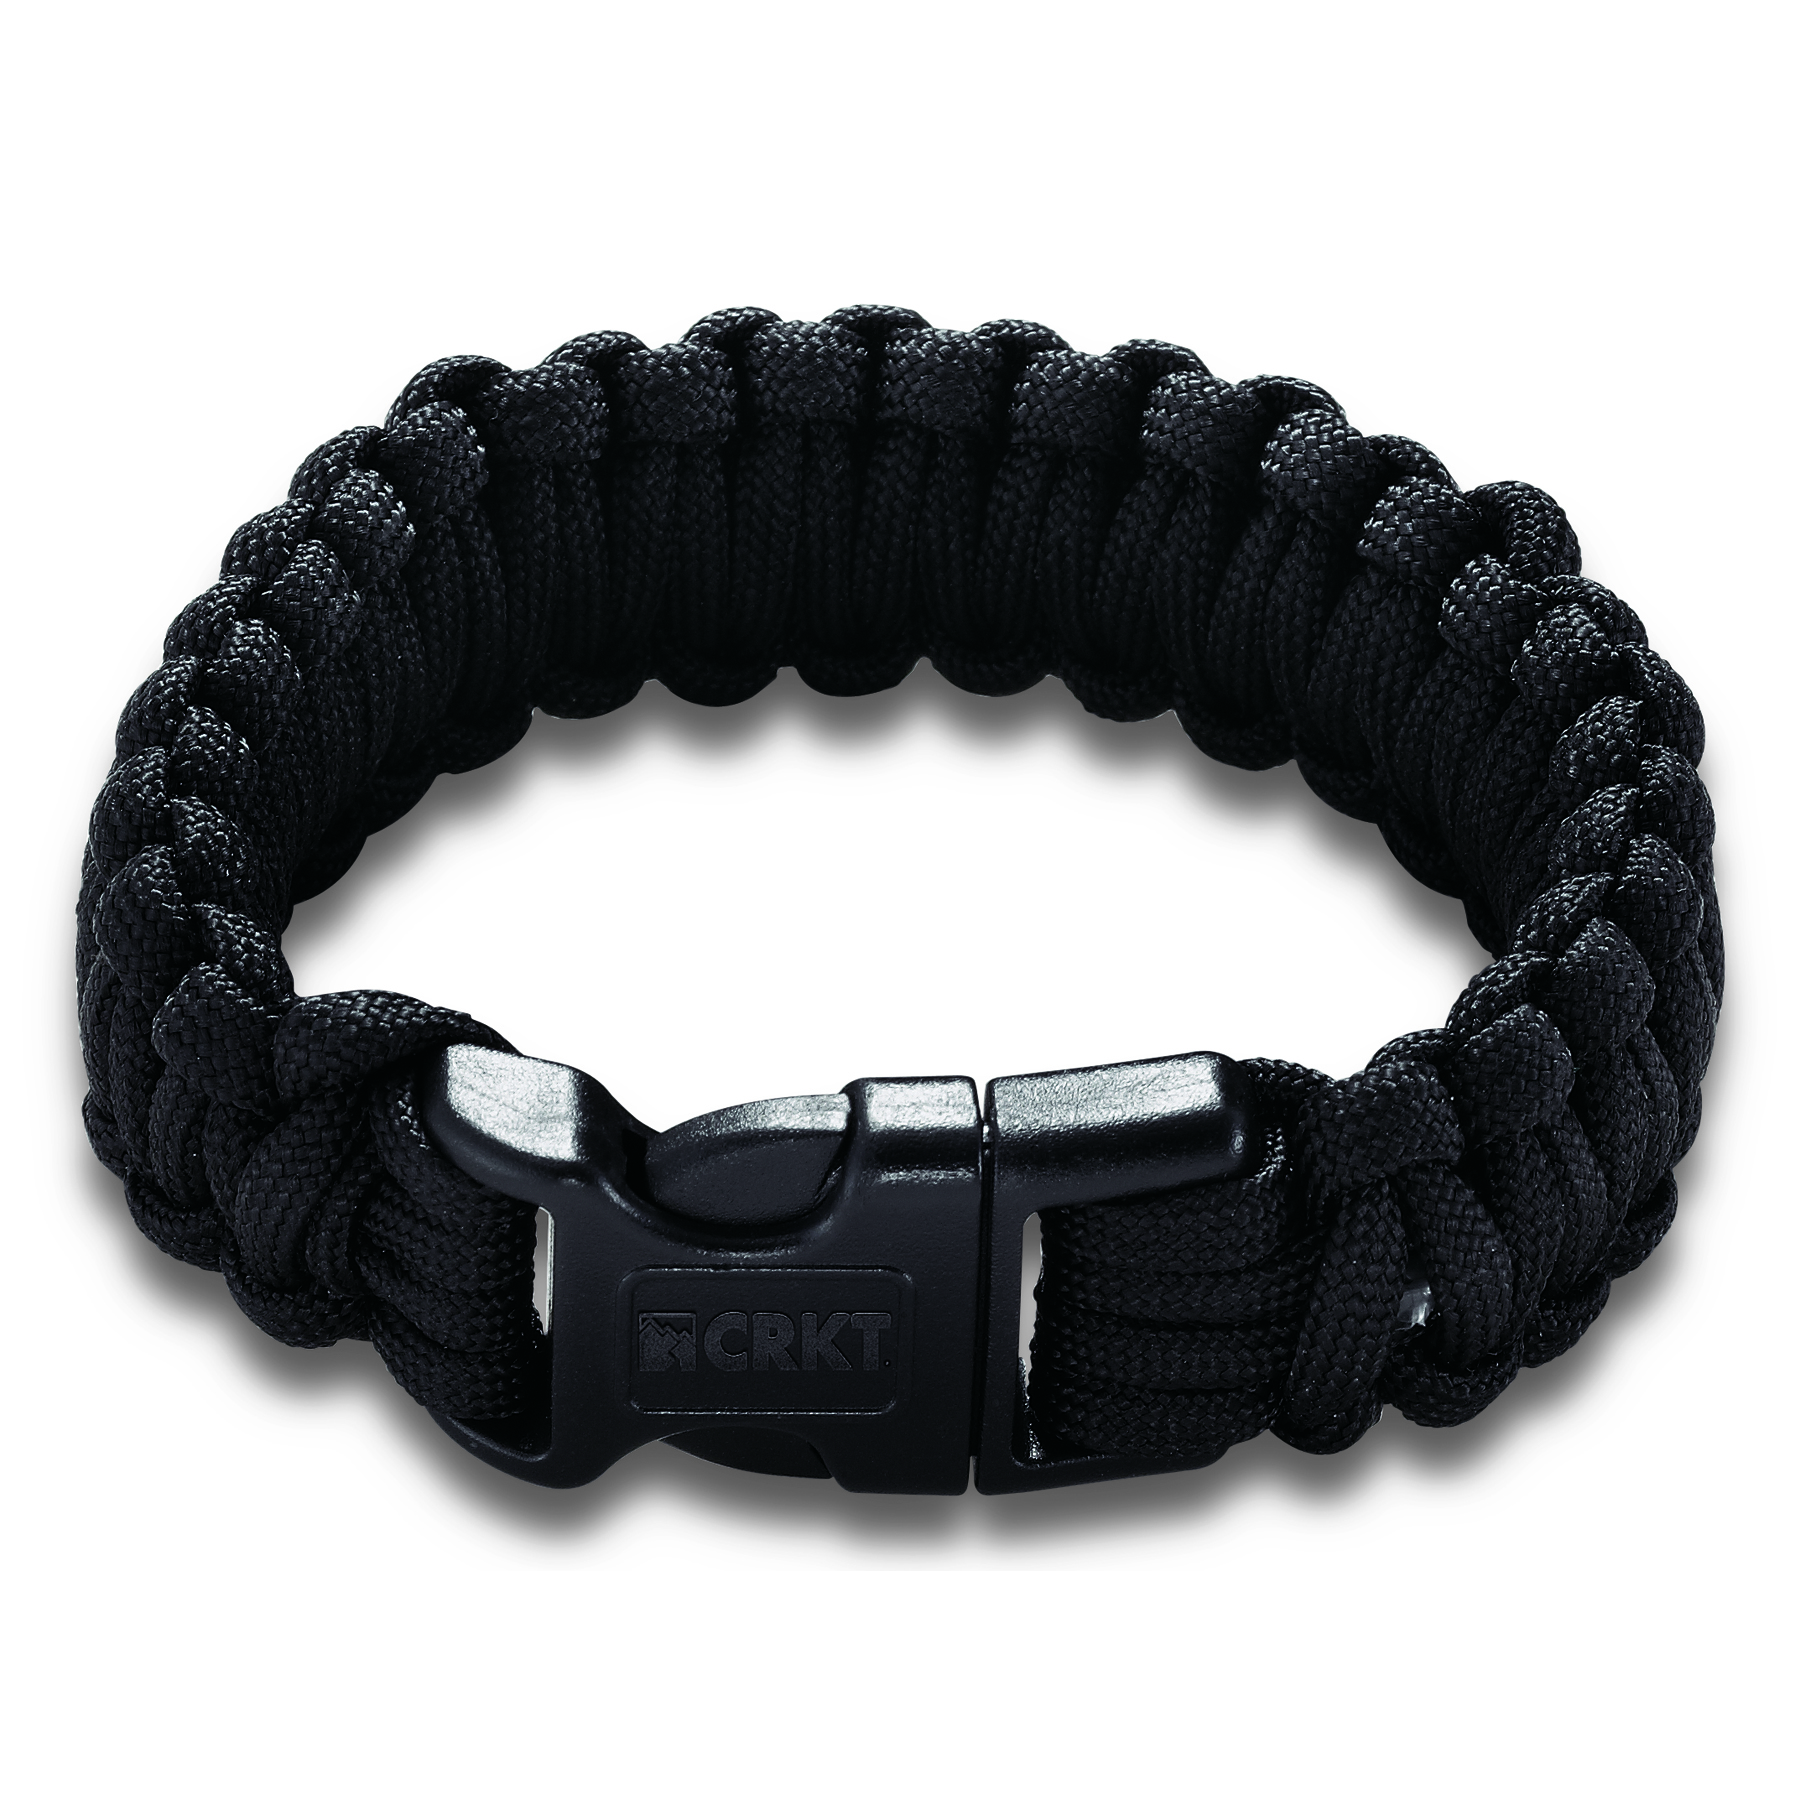 9300KS - CRKT Para-Saw Survival Bracelet Black